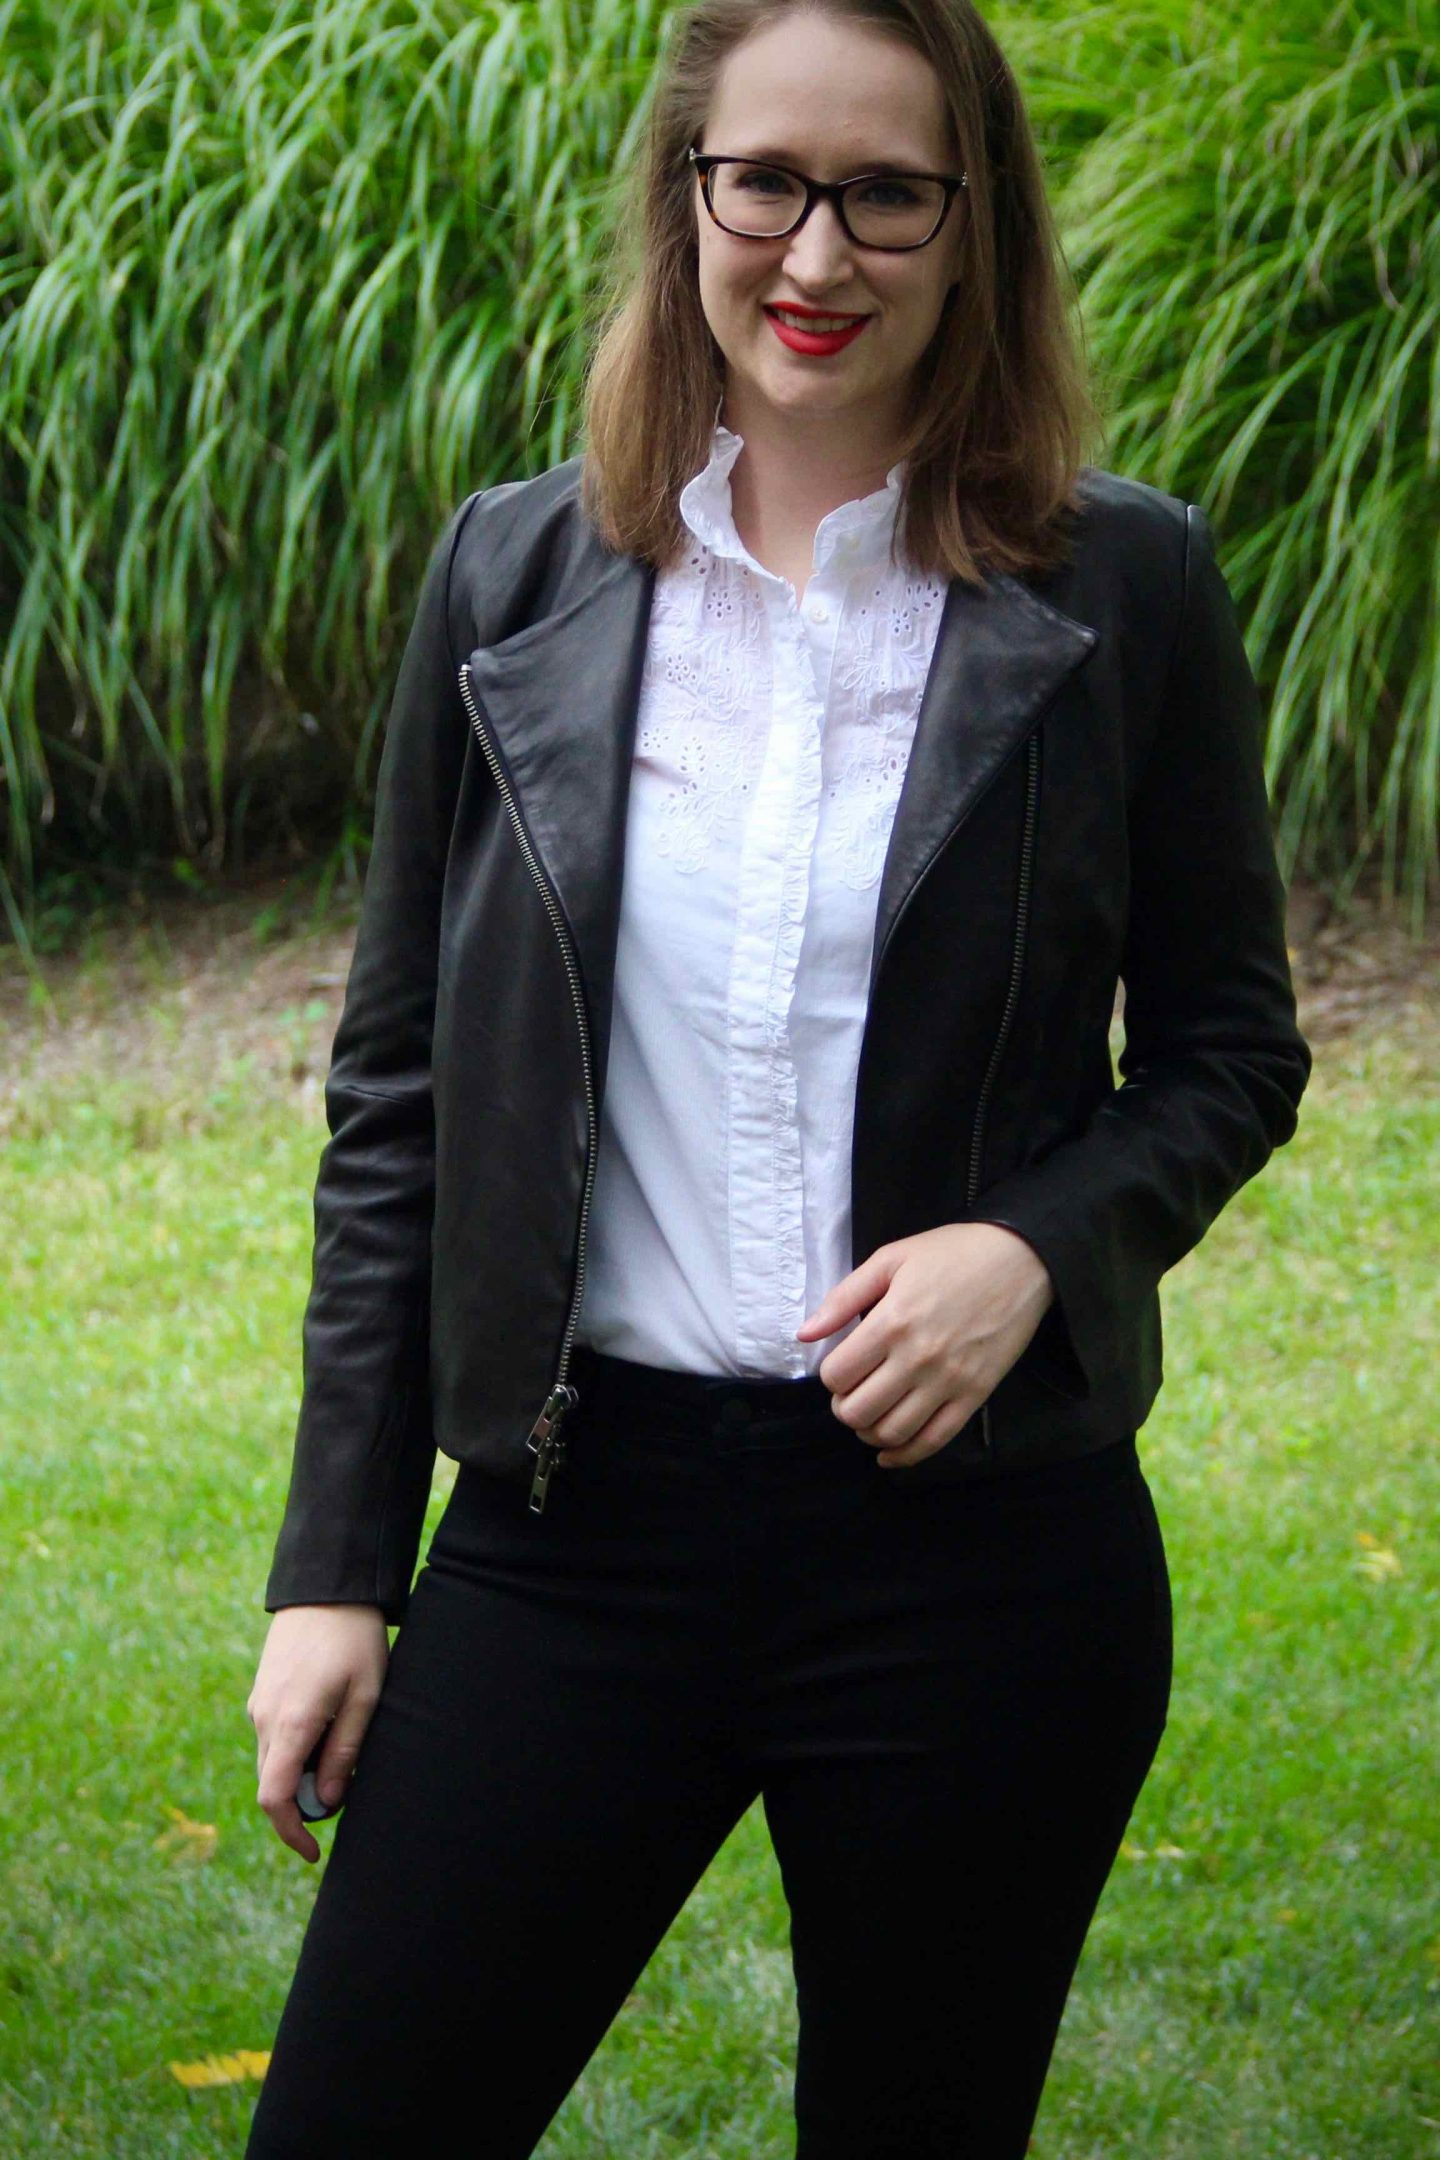 Fall Leather Fashion | Feminine Blouse with Leather Jacket | The Spectacular Adventurer